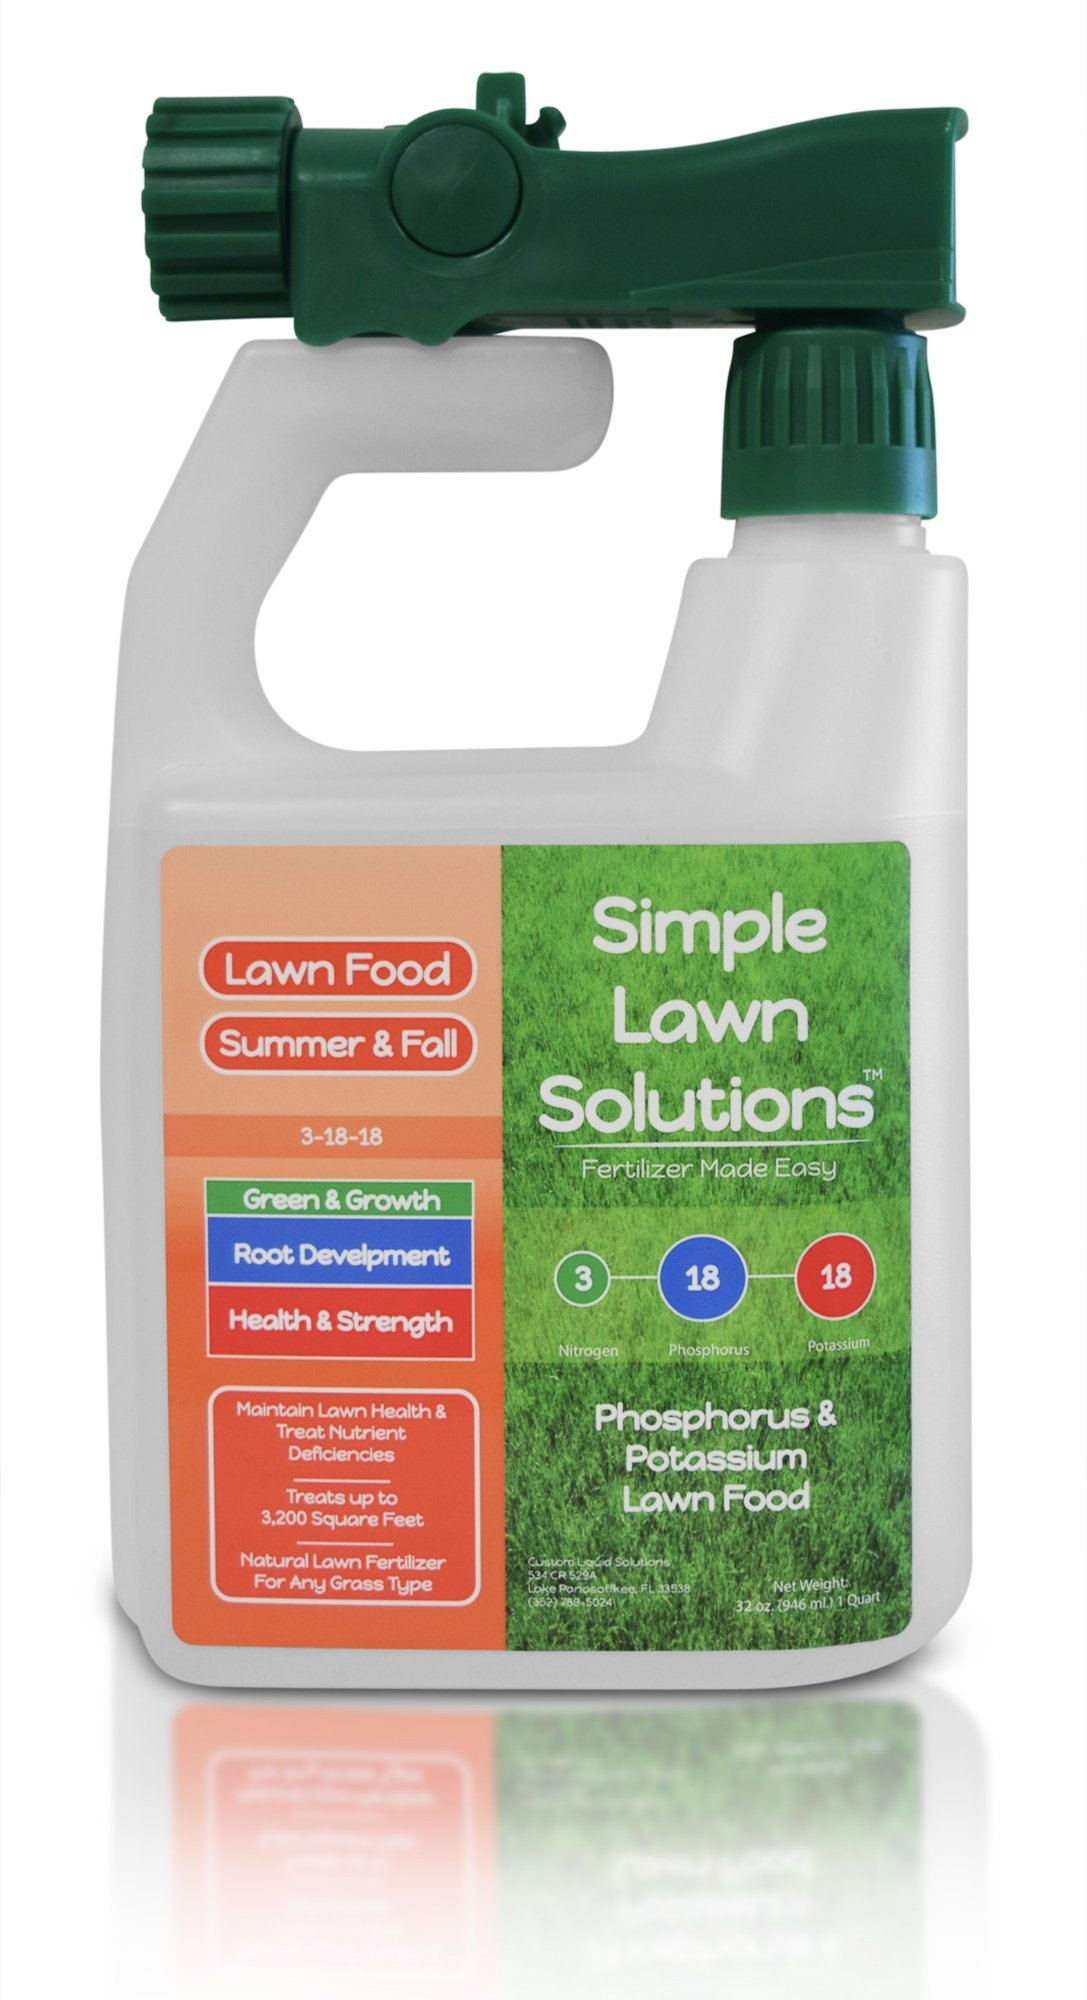 Lawn Fertilizer Concentrated Simple Solutions